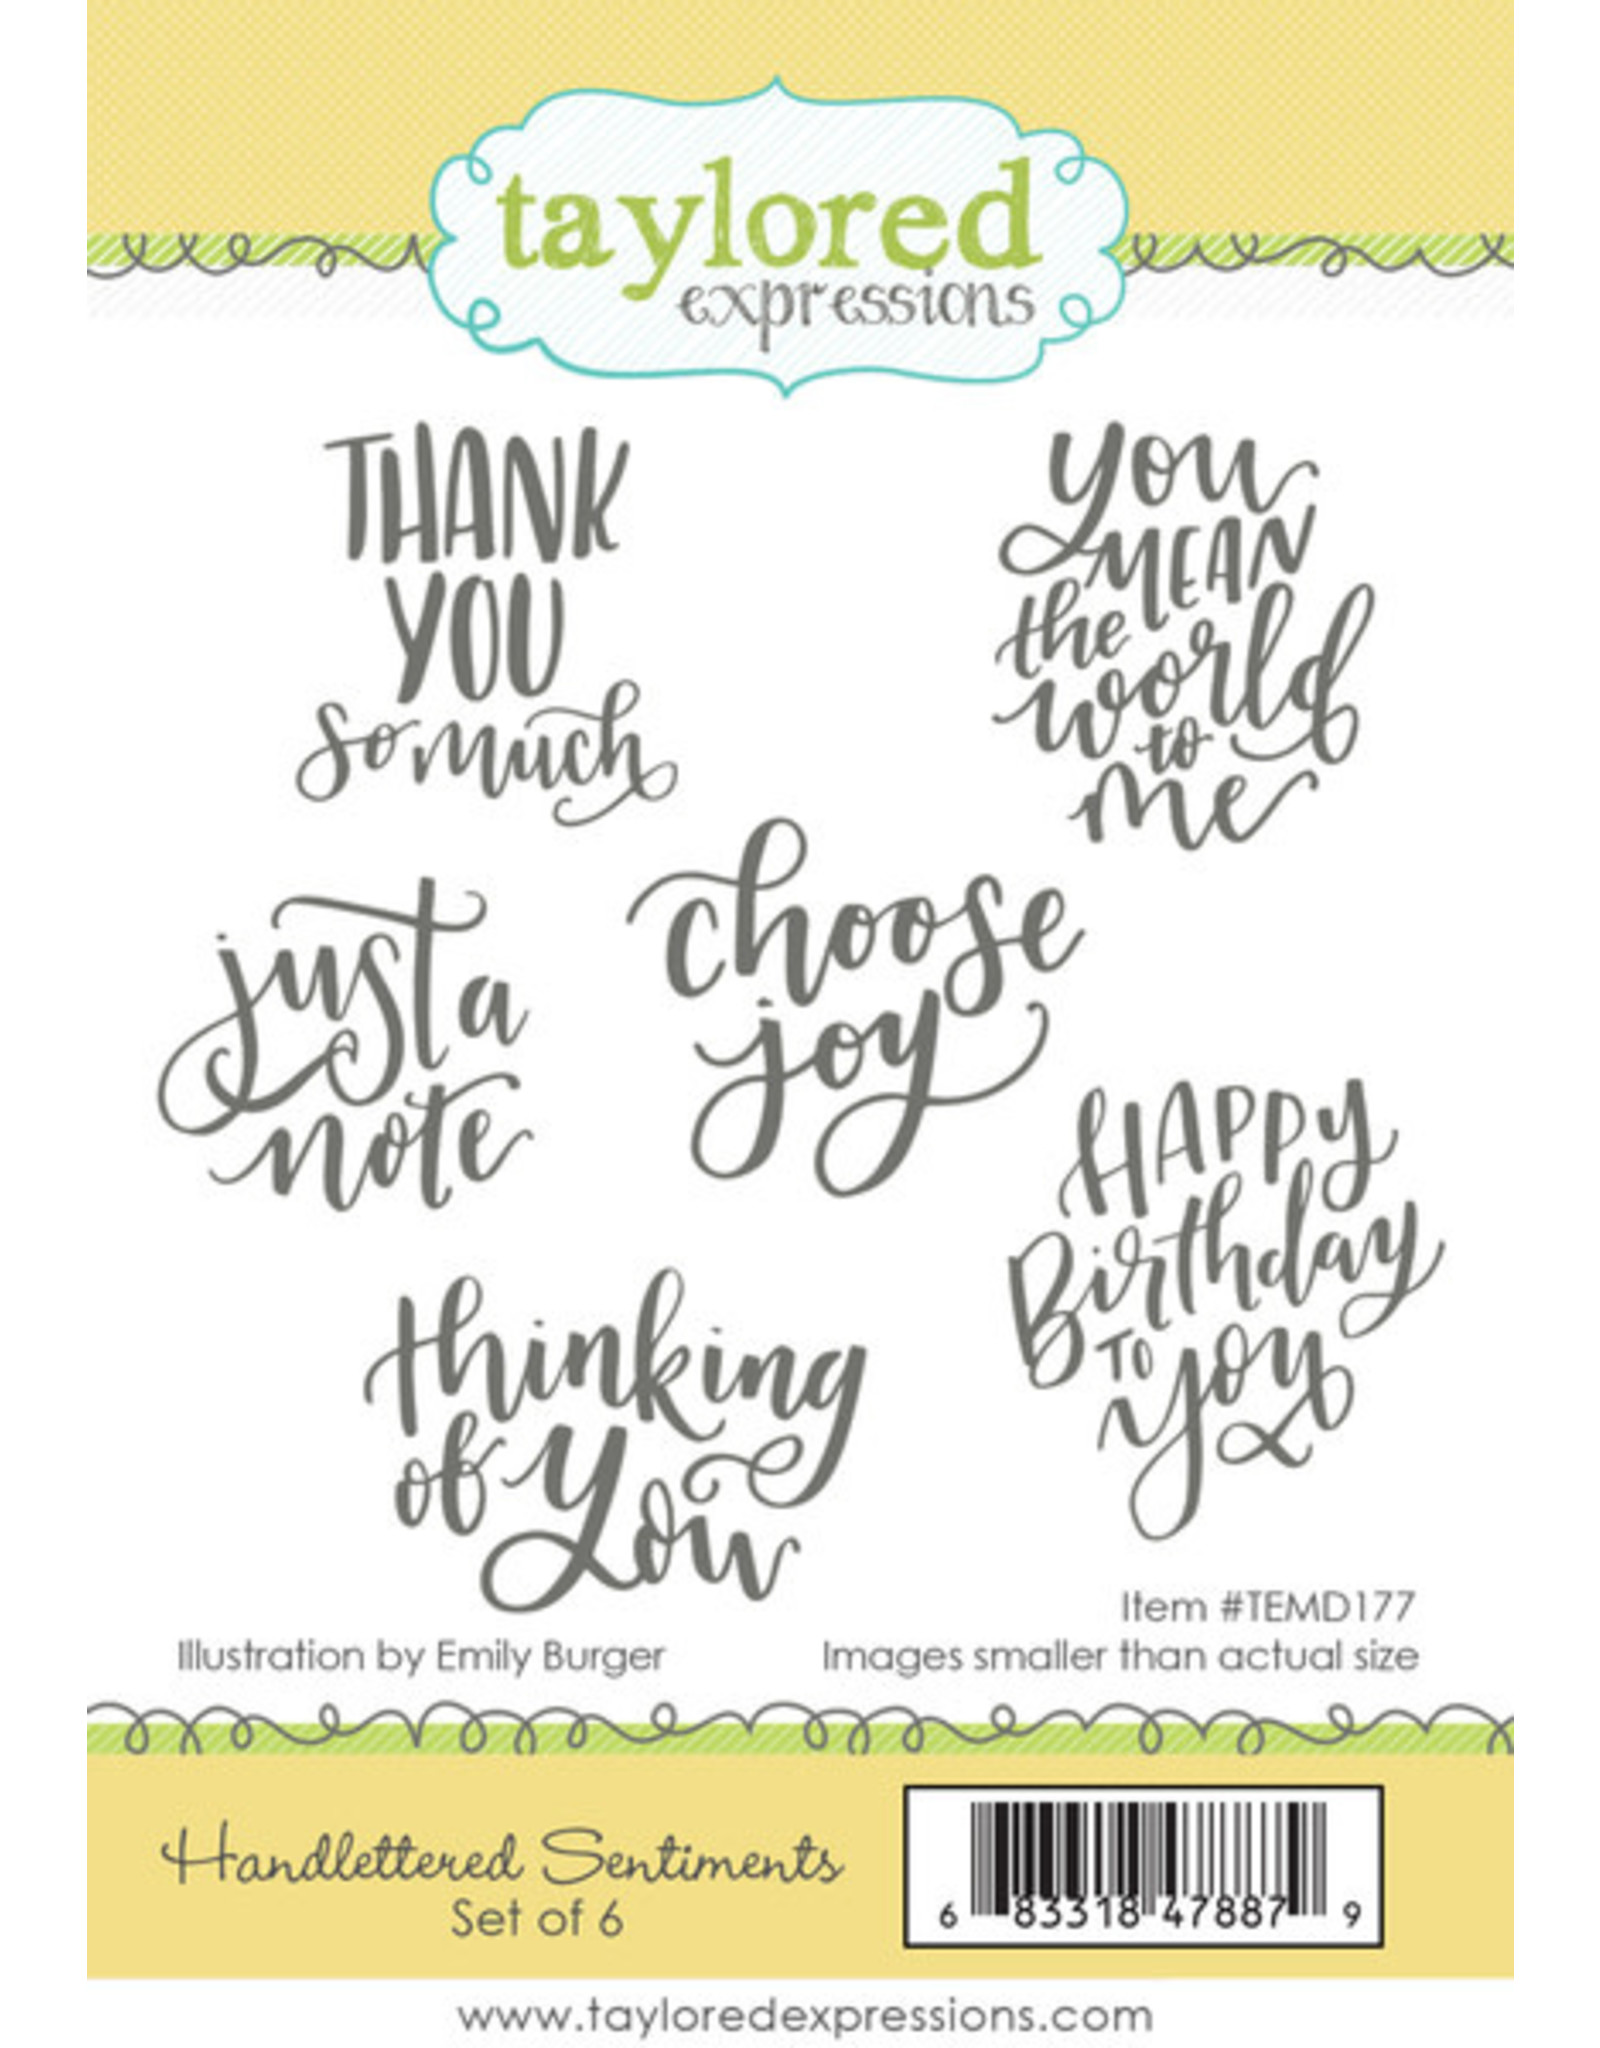 Taylored Expressions Handlettered Sentiments - Cling Stamp Set